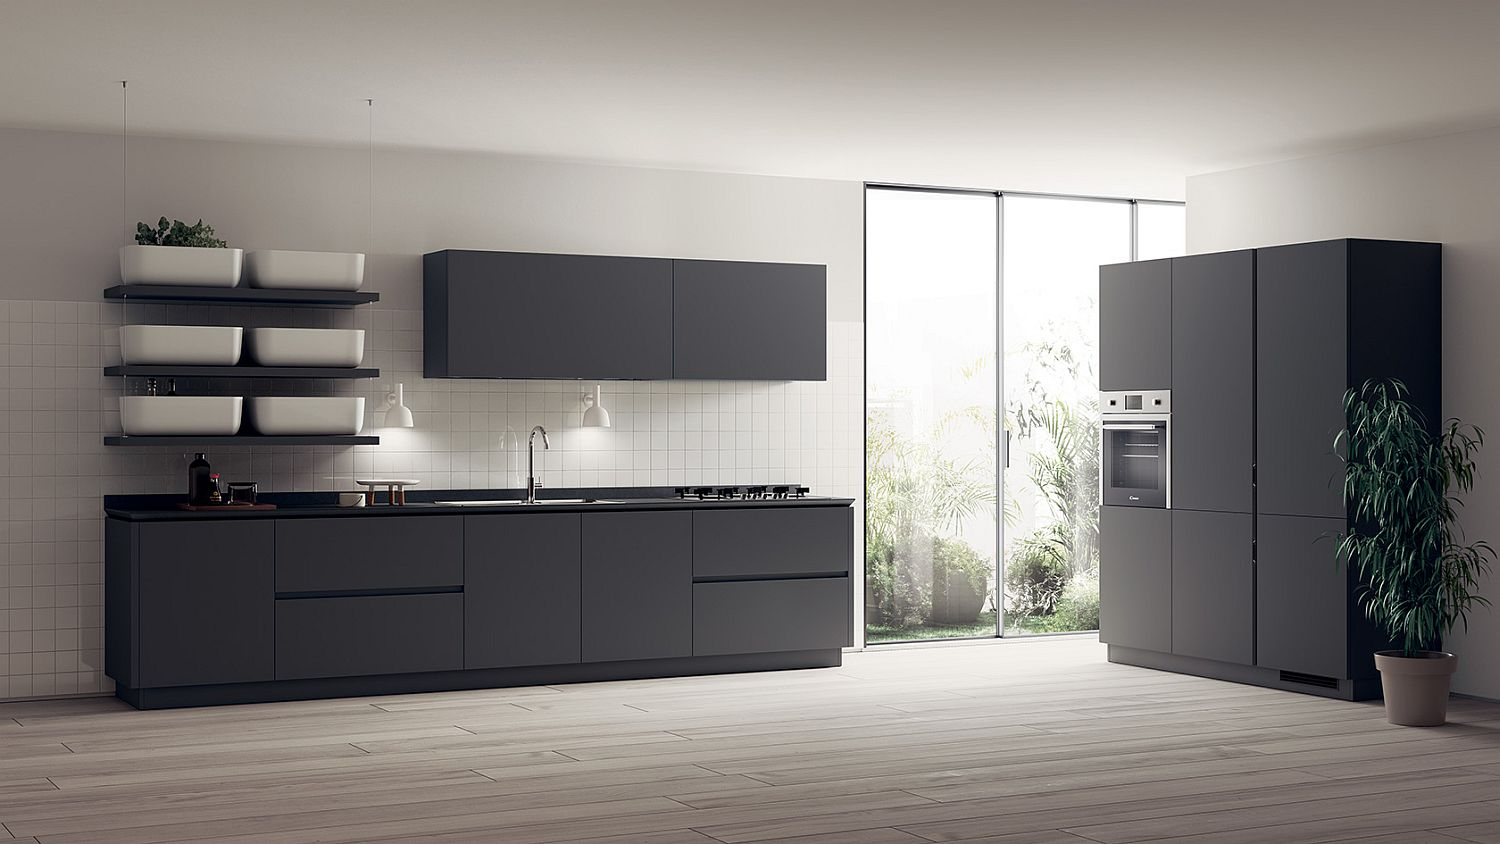 Inspired by Japanese Minimalism: Posh Scavolini Kitchen